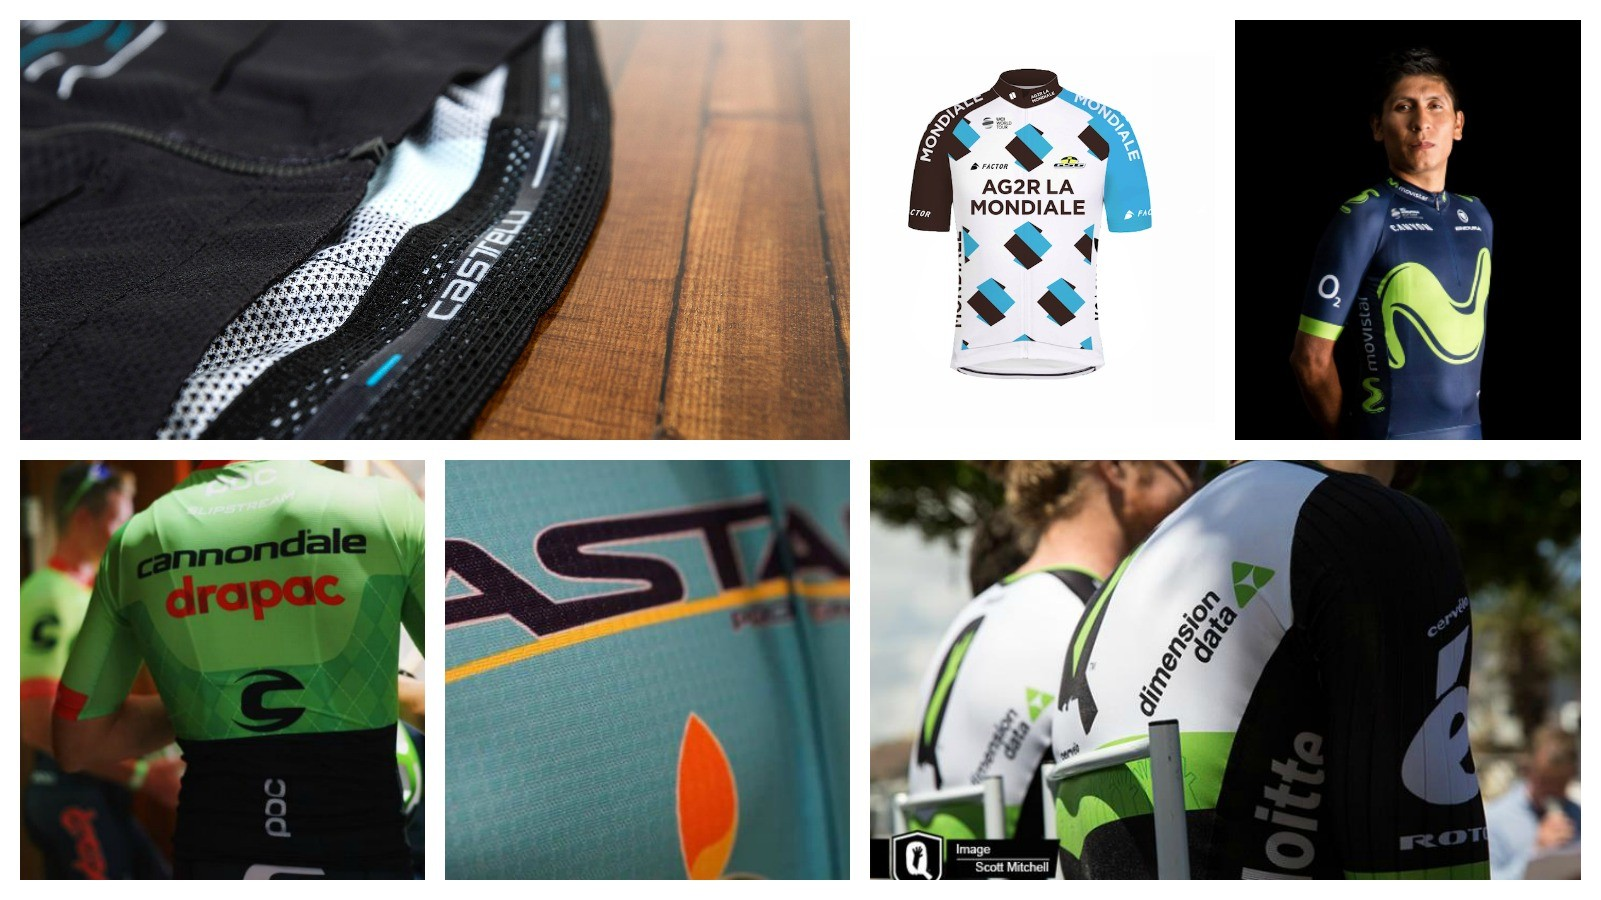 How well do you know the 2017 WorldTour kit? Let's find out…